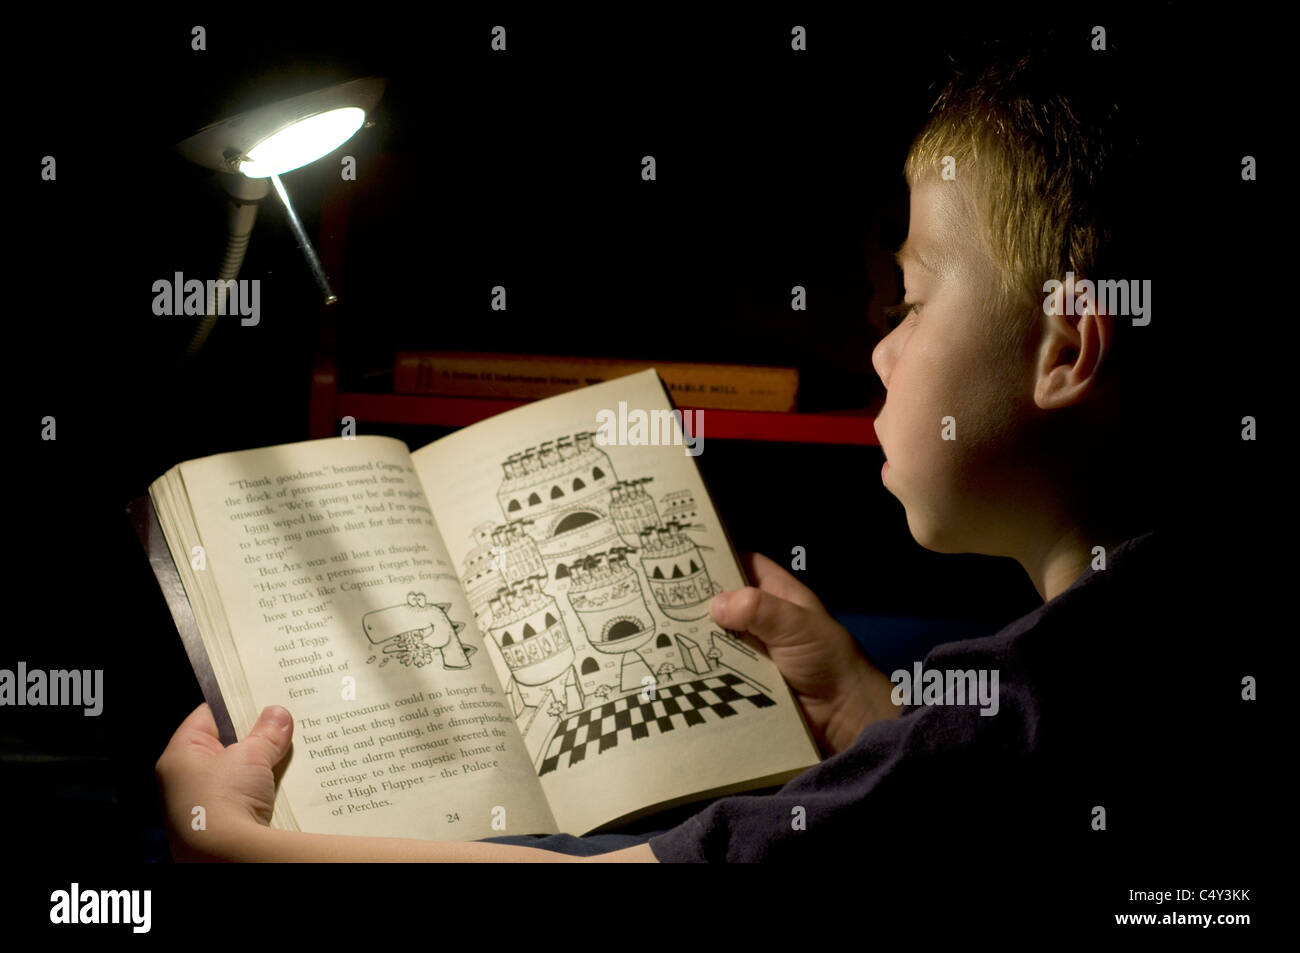 Book at Bedtime a seven year old boy reading a book in his bed using a lamp,young boy,Family It takes ingenuity - Stock Image